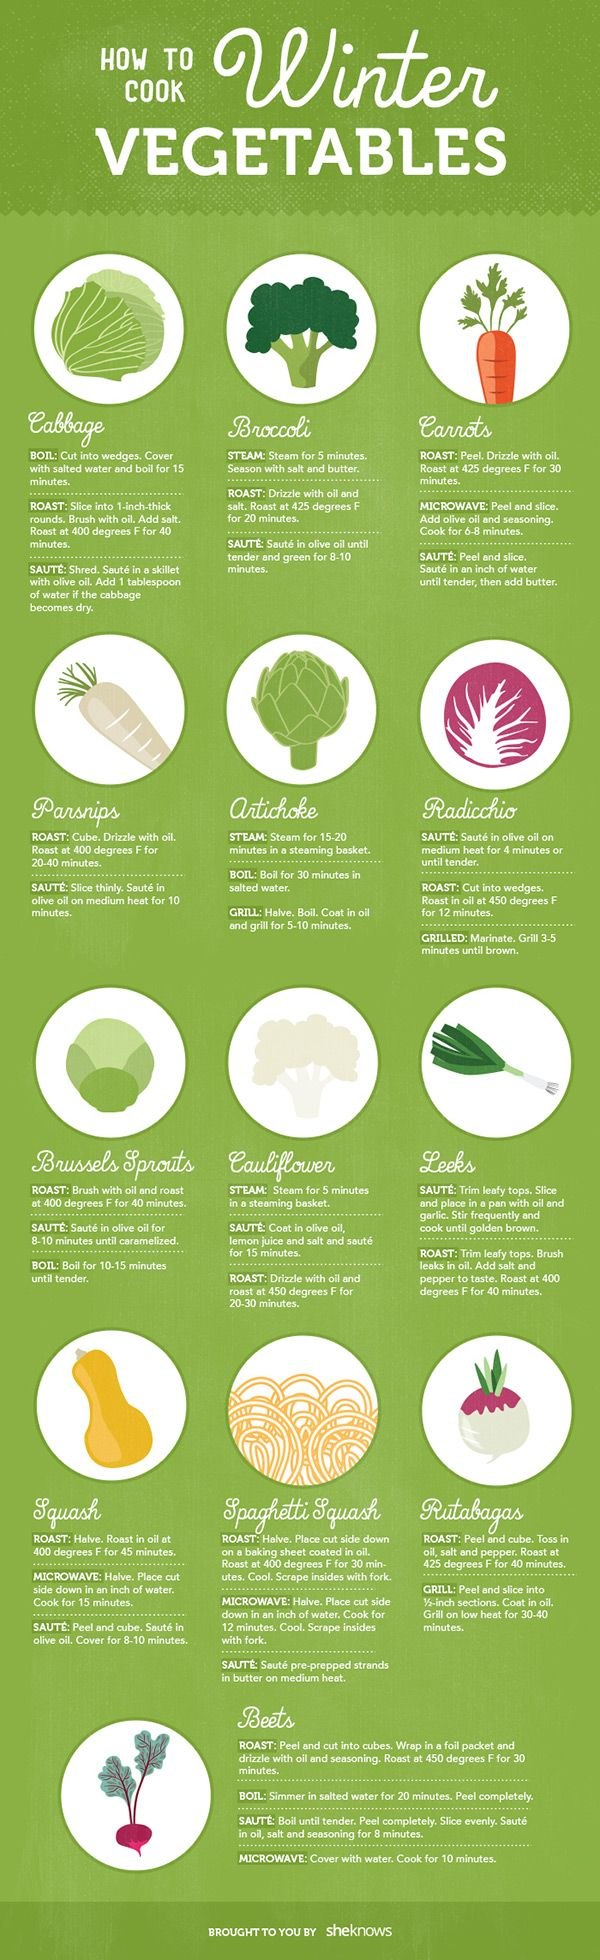 A handy infographic that breaks down the best ways to cook winter vegetables.